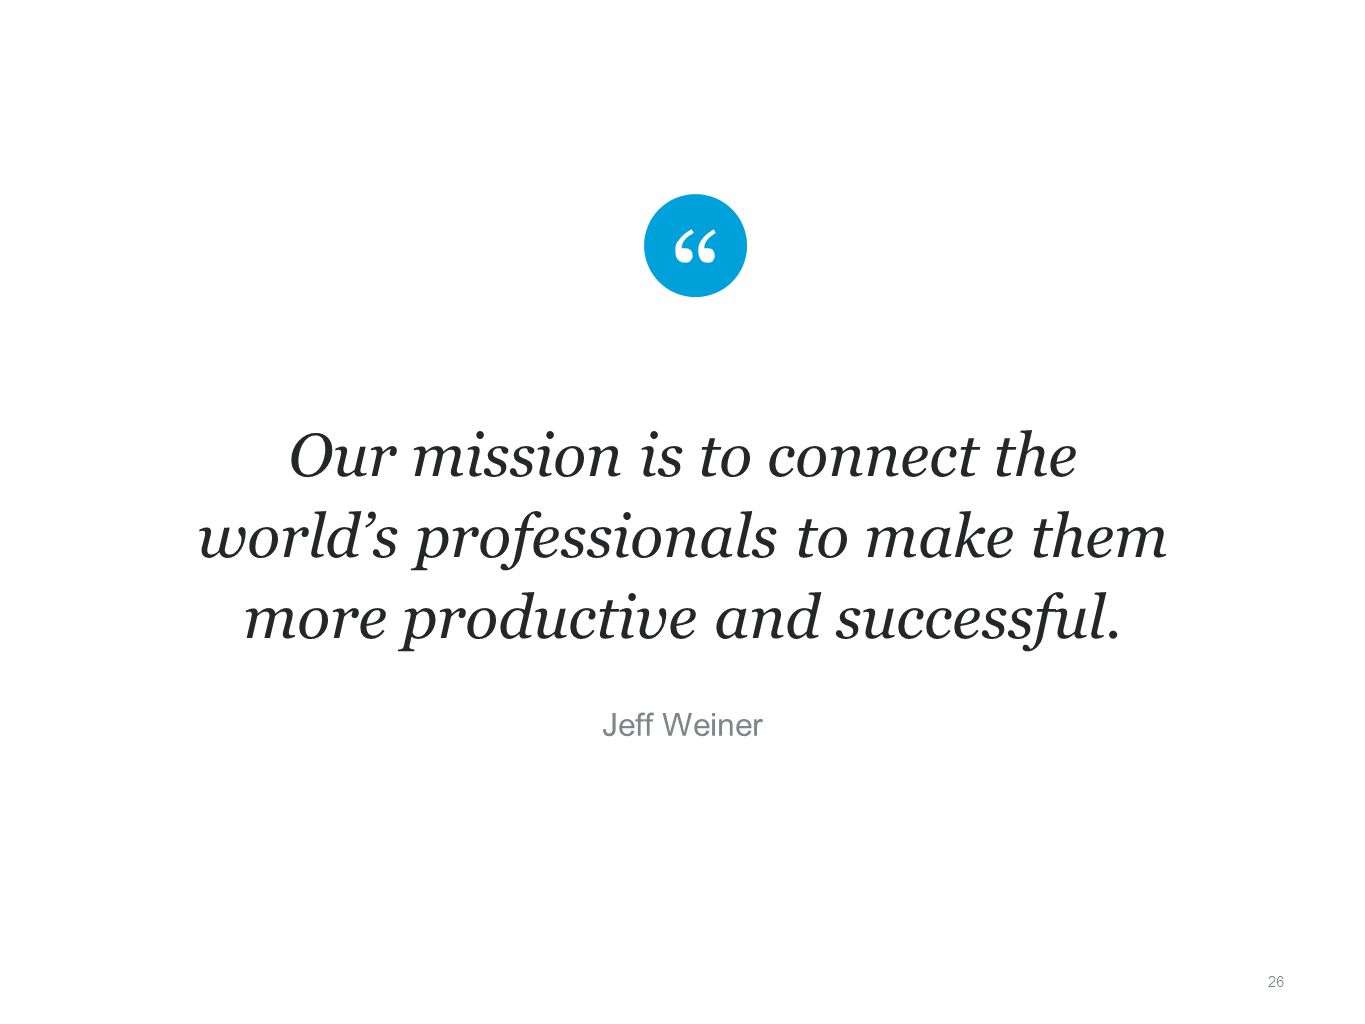 Our mission is to connect the world's professionals to make them more productive and successful.